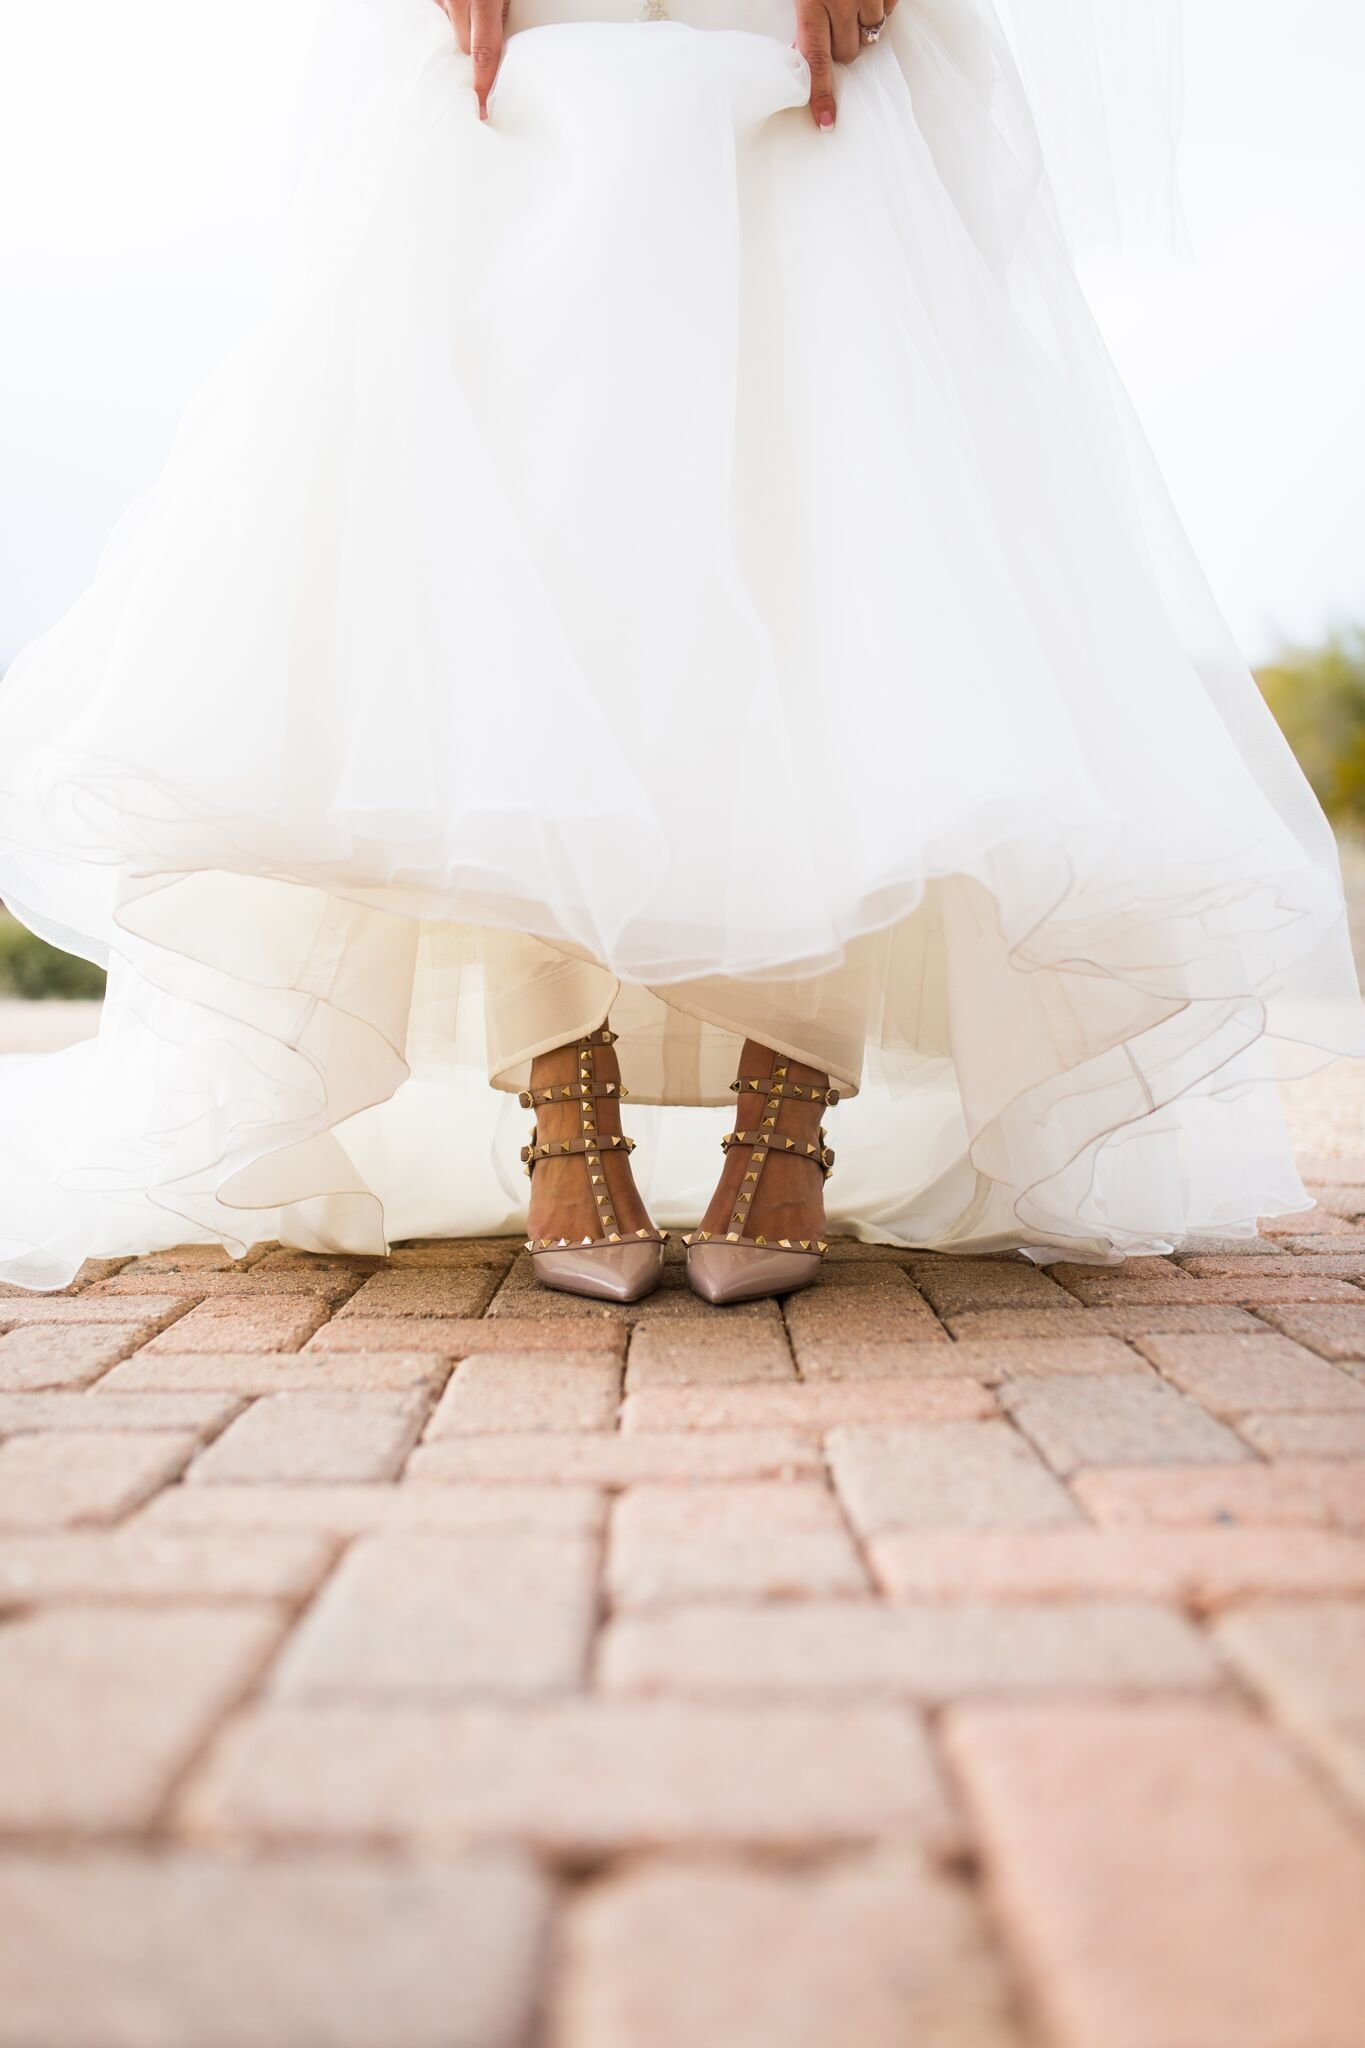 YEF_Bride in Her Shoes_preview